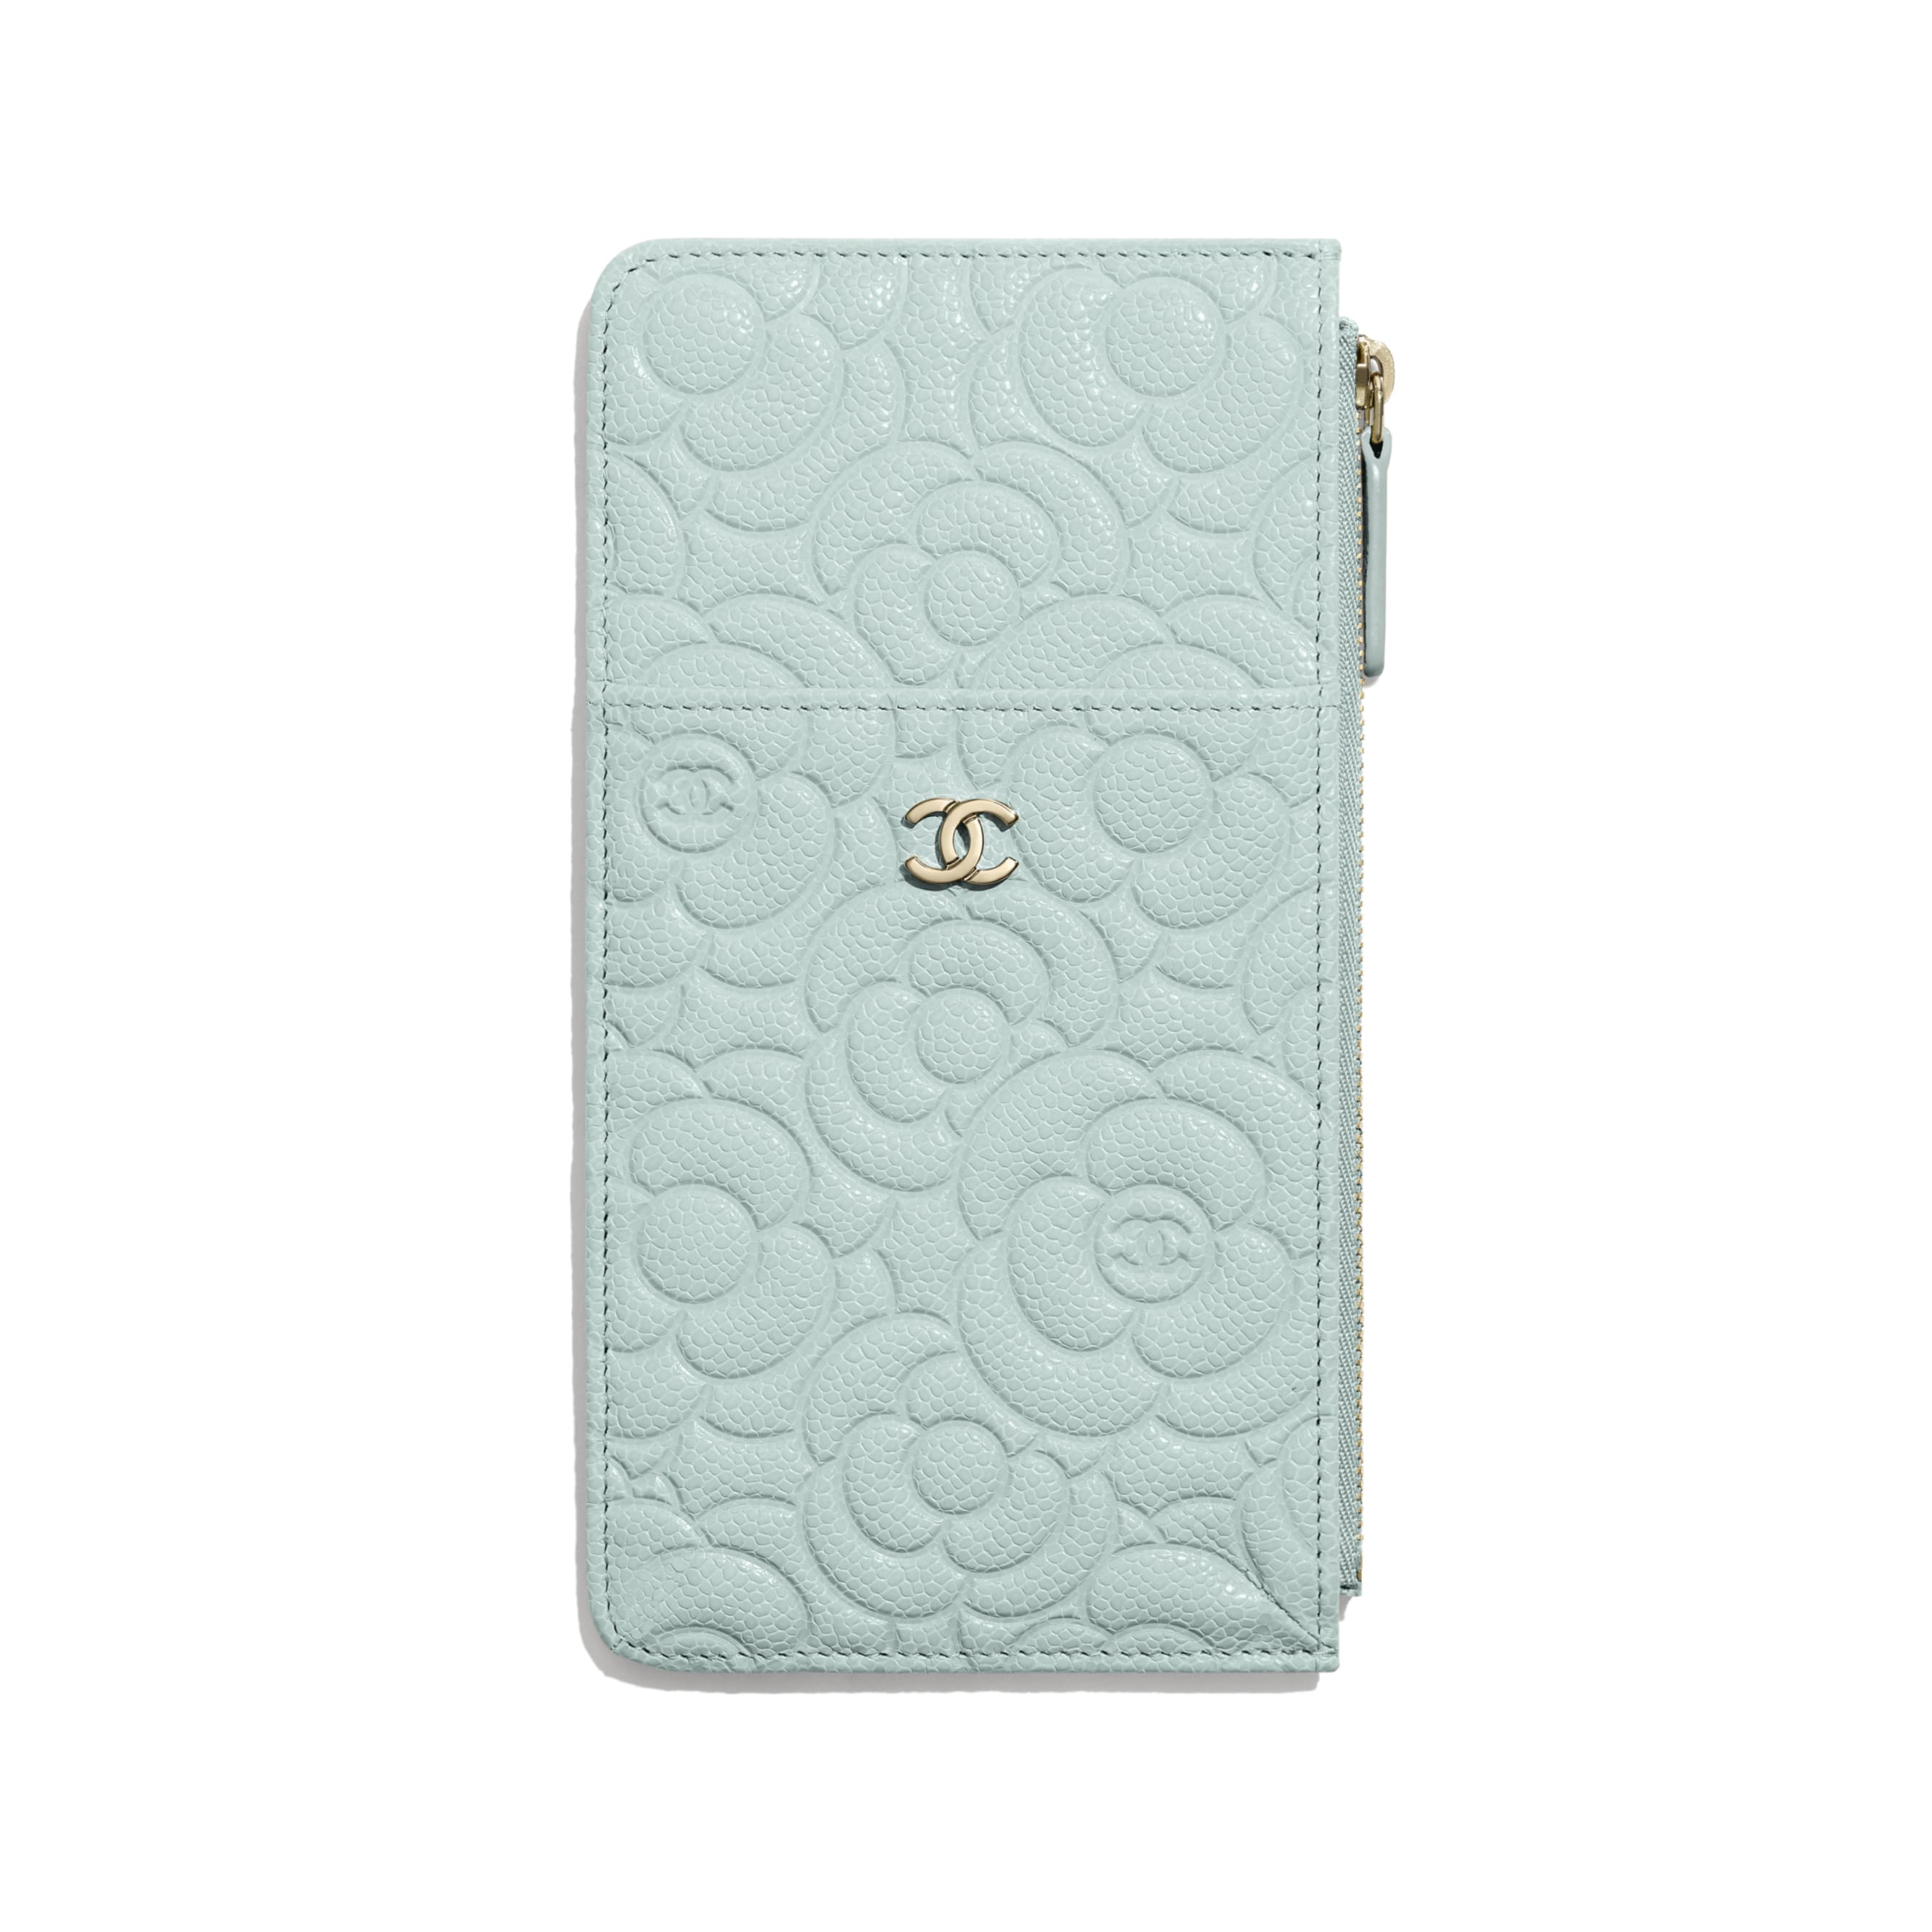 Phone & Card Holder - Light Blue - Grained Shiny Calfskin & Gold-Tone Metal - Default view - see standard sized version